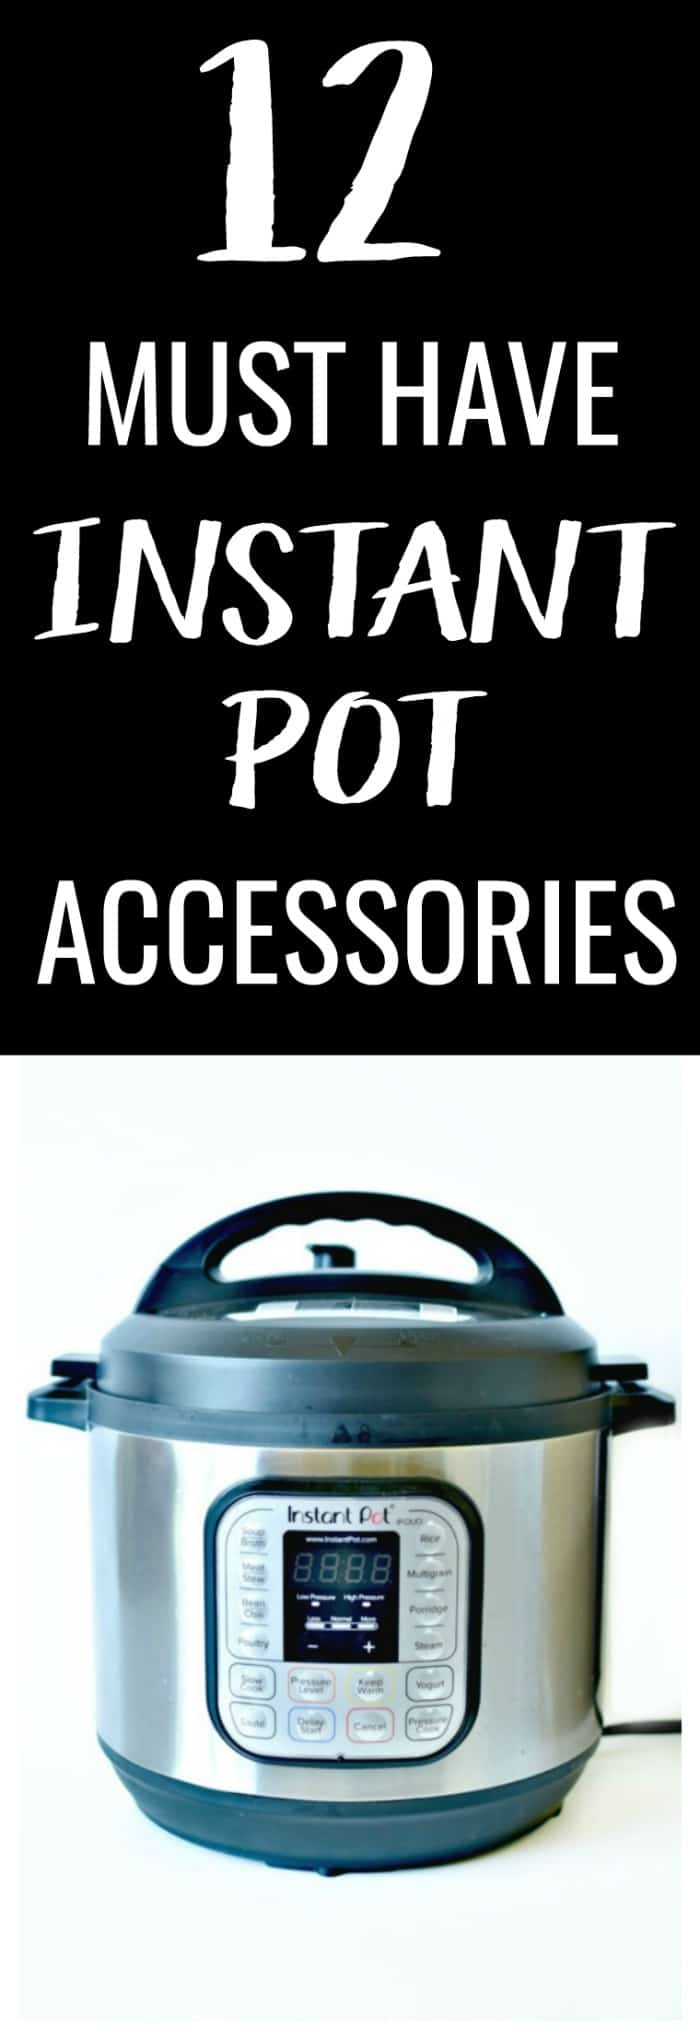 You have an Instant Pot, now what? These 12 Must Have Instant Pot Accessories will take your cooking to the next level and maximize your Instant Pot!